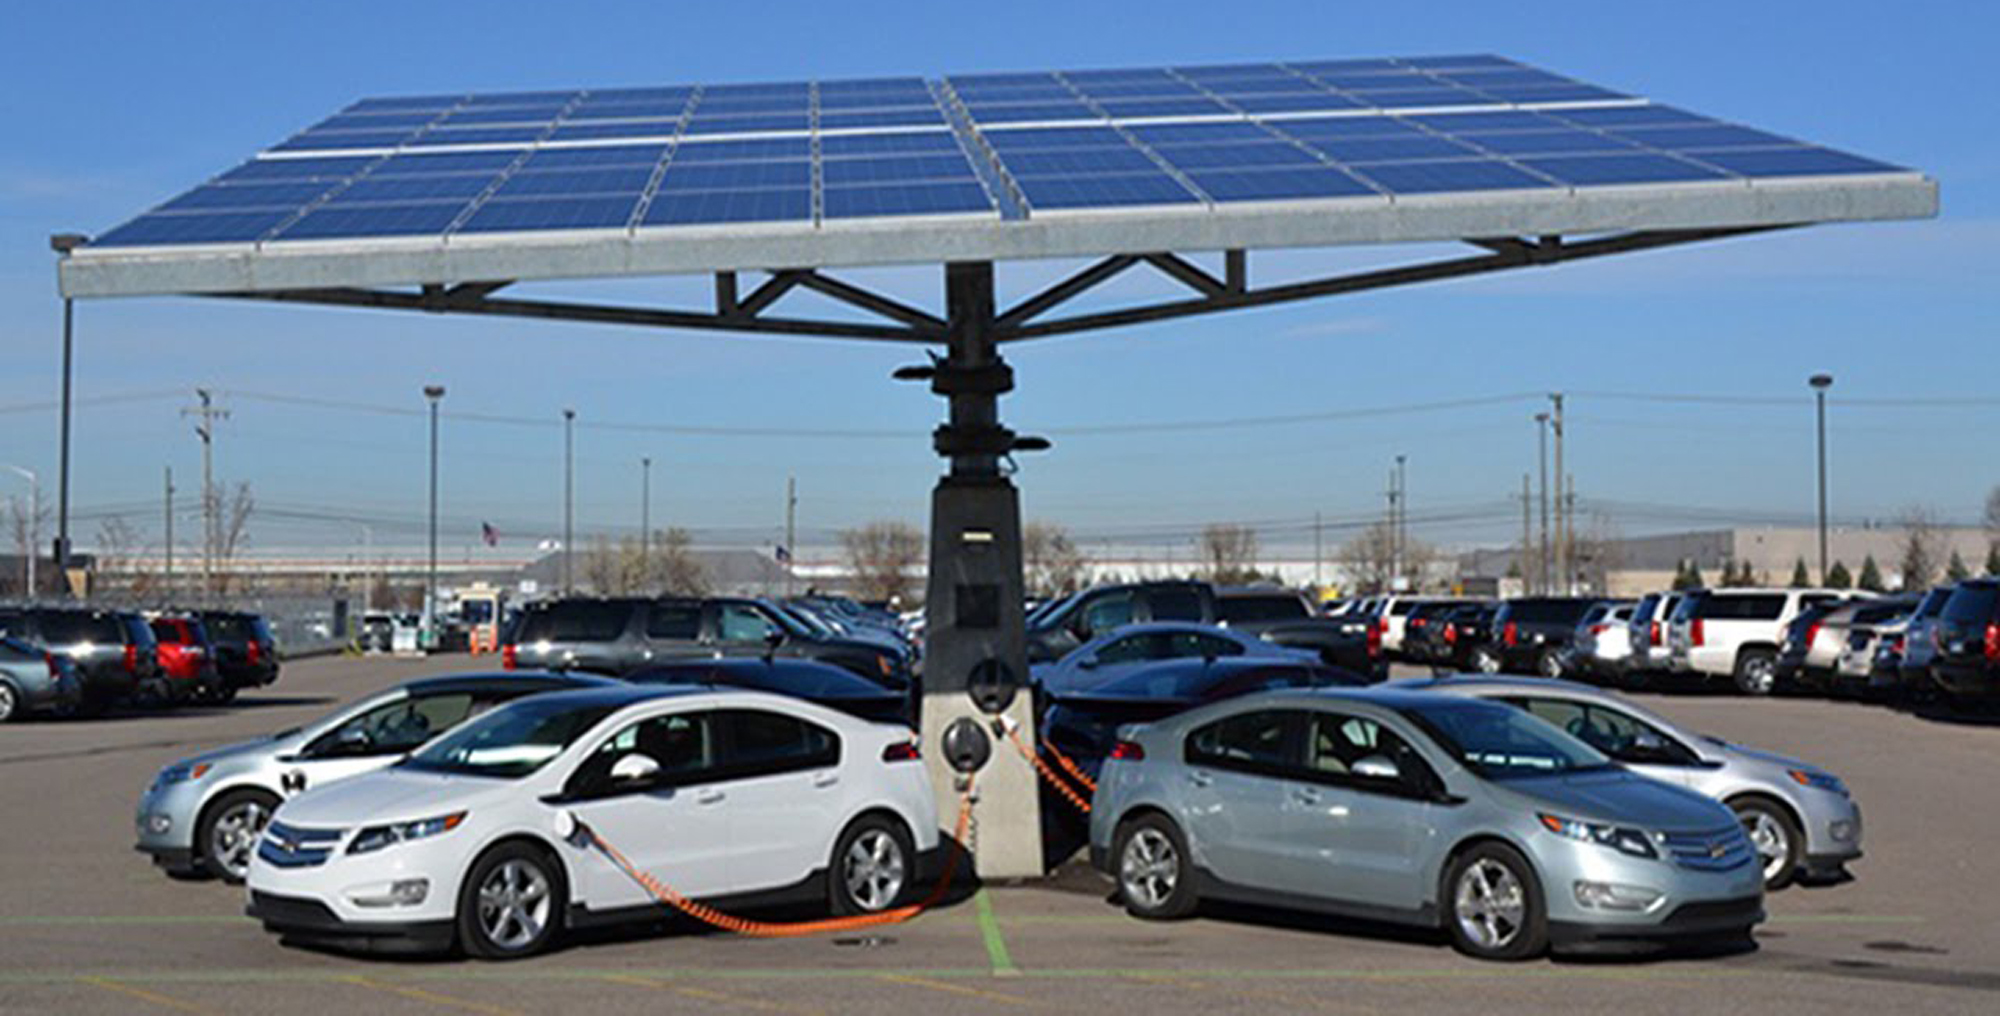 The Business of Electric Vehicles; They have benefits, but likely won't save you money